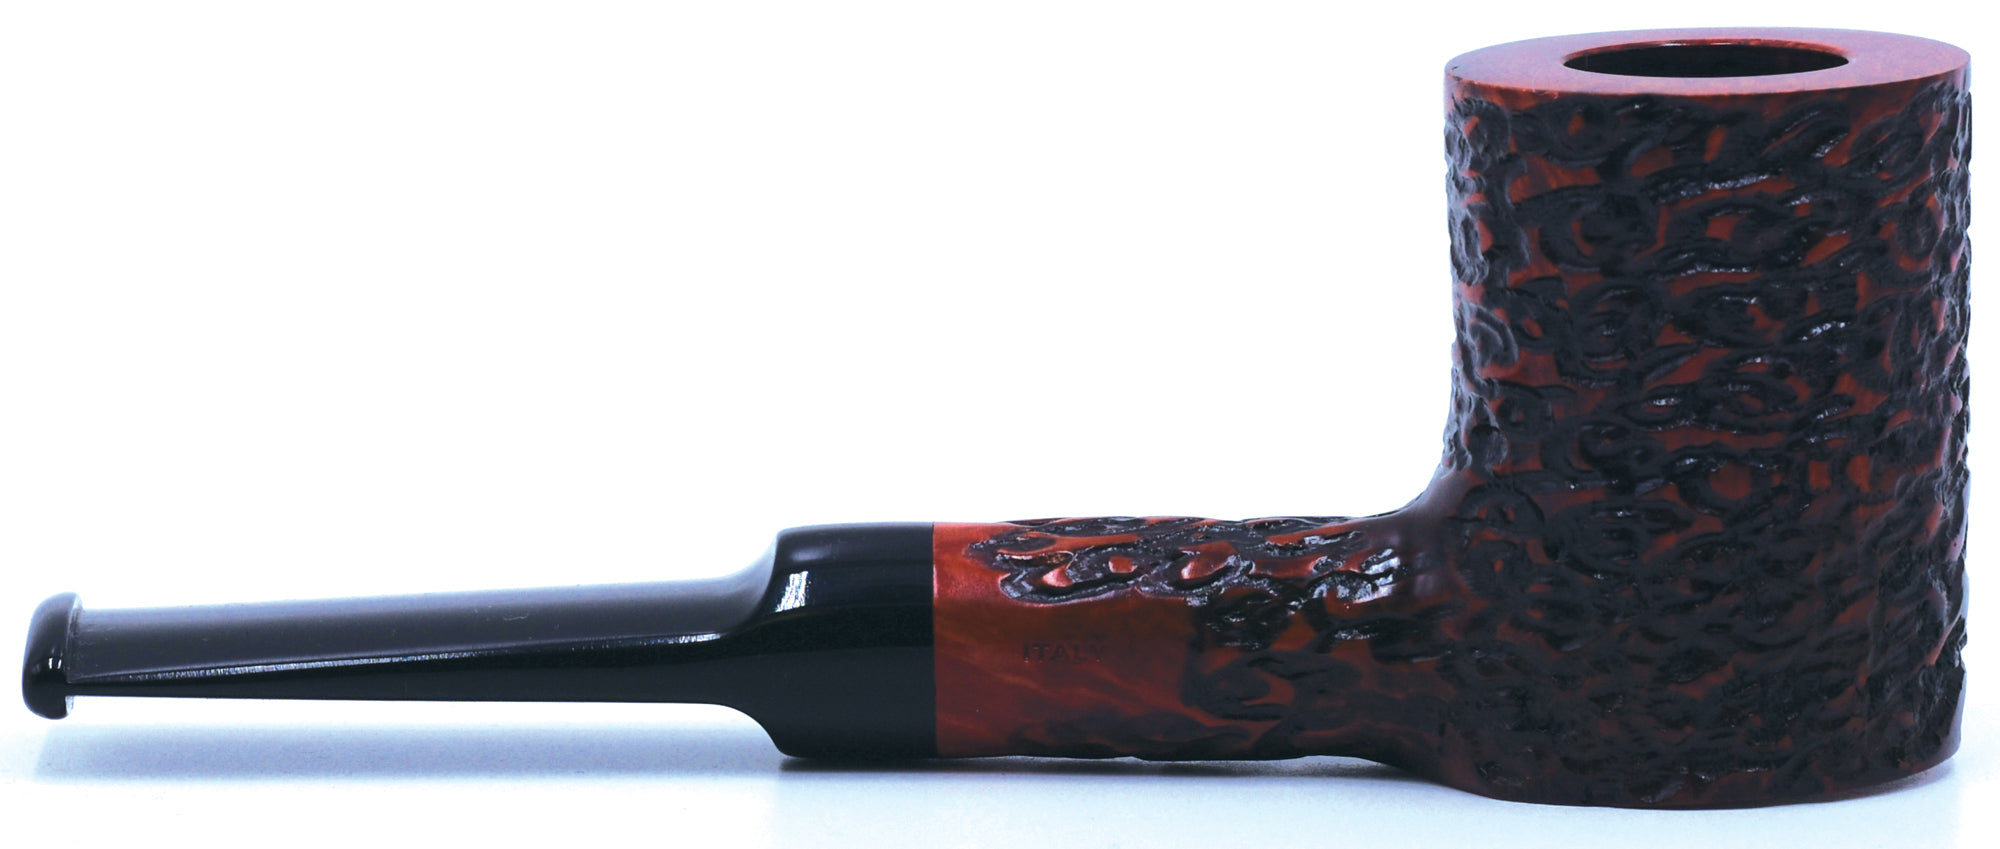 LEGENDEX® PAGANINI* 9 MM Filtered Briar Smoking Pipe Made In Italy 01-08-341